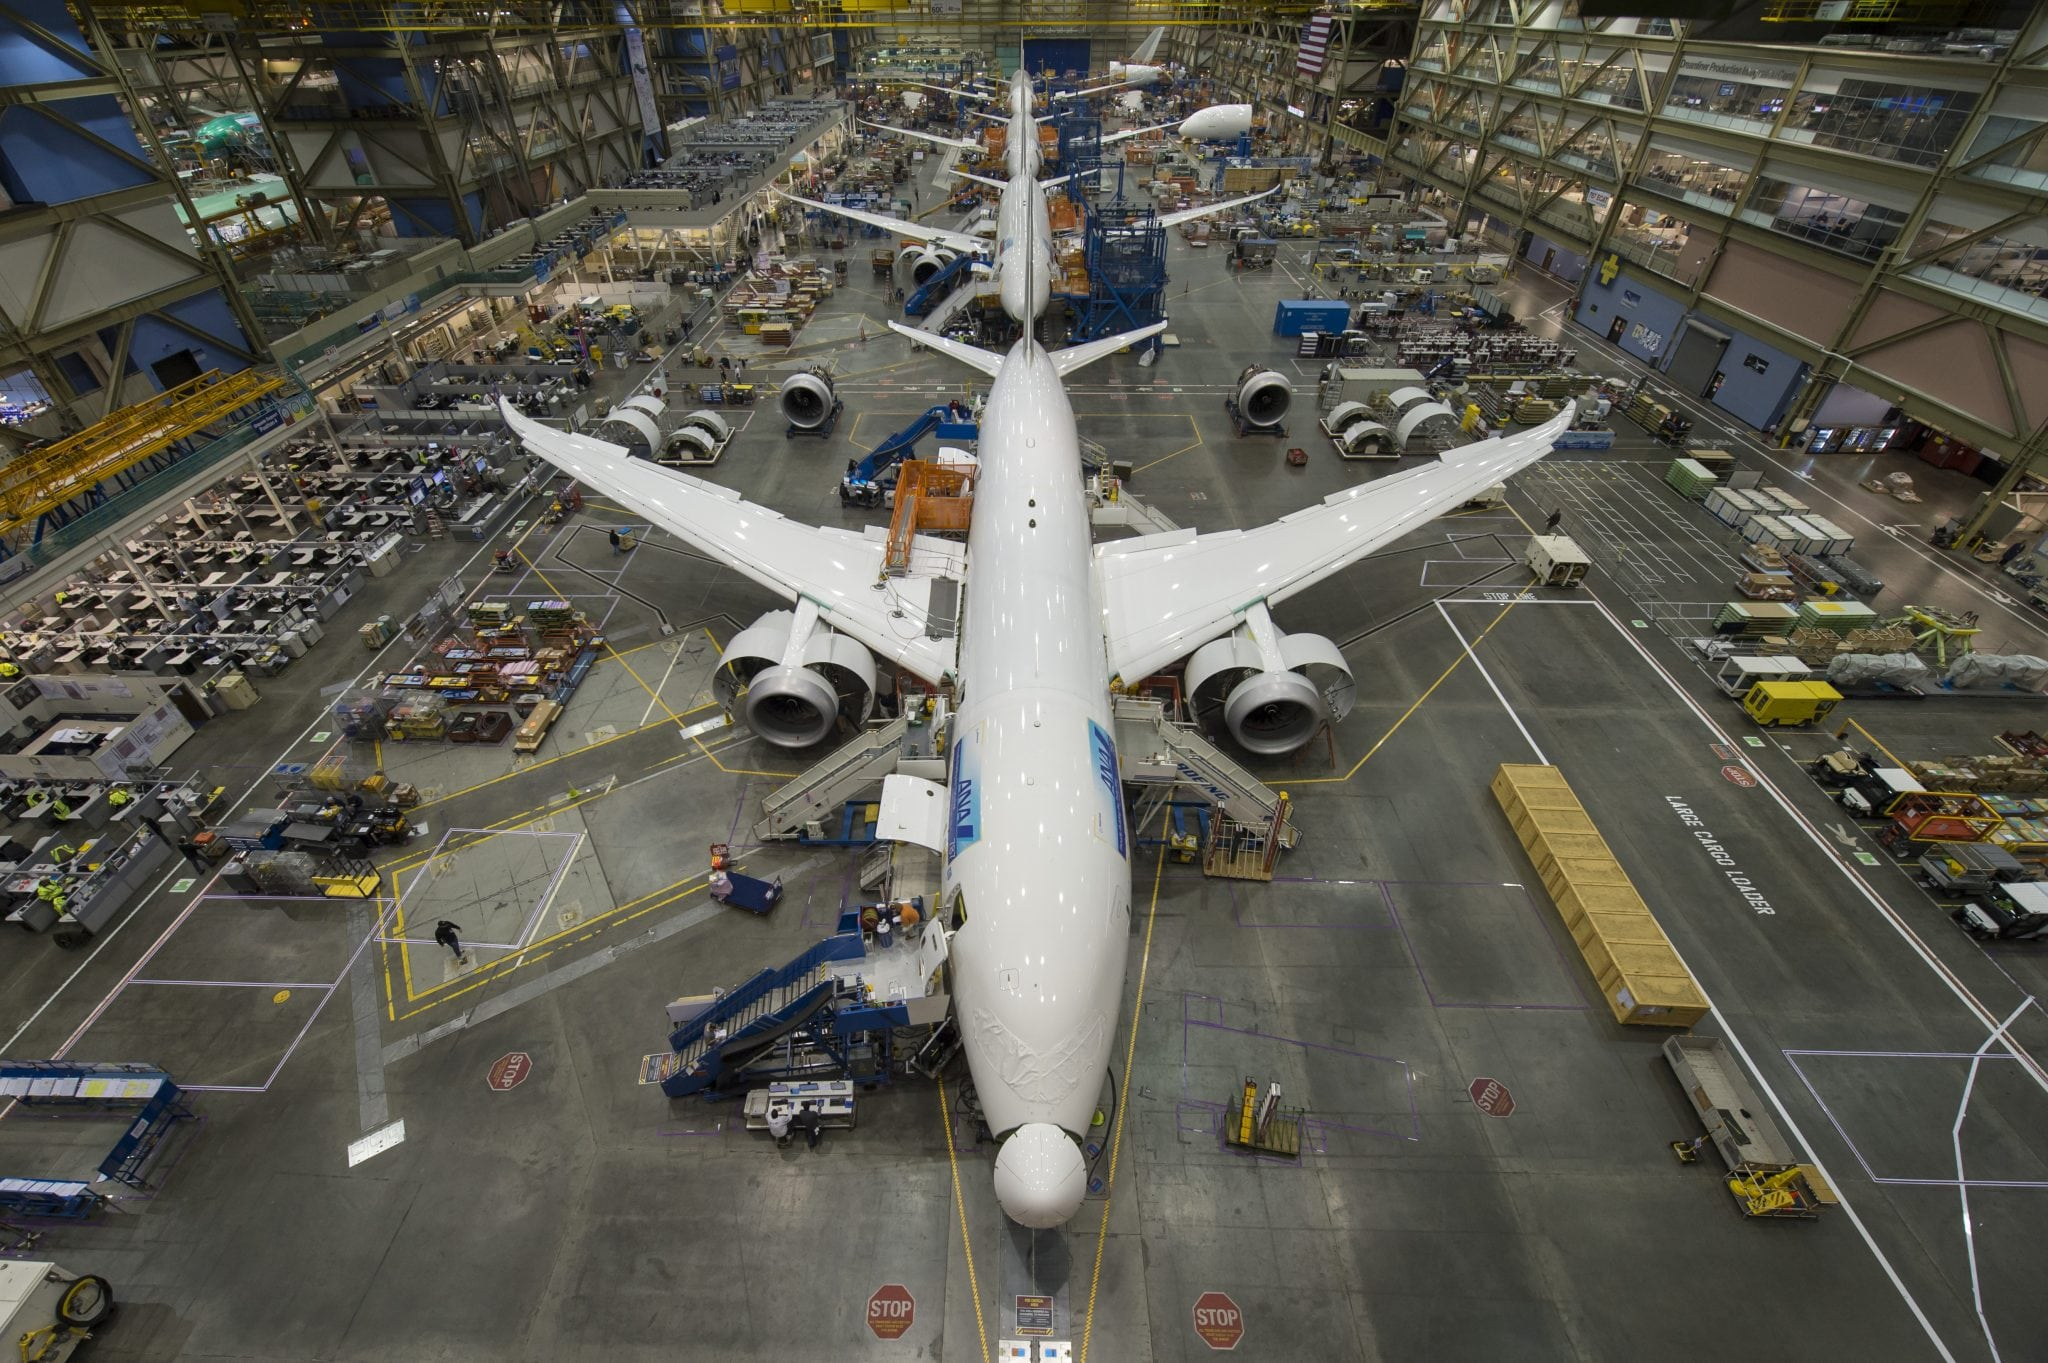 787 aircraft on the manufacturing line in Everett, Wash.